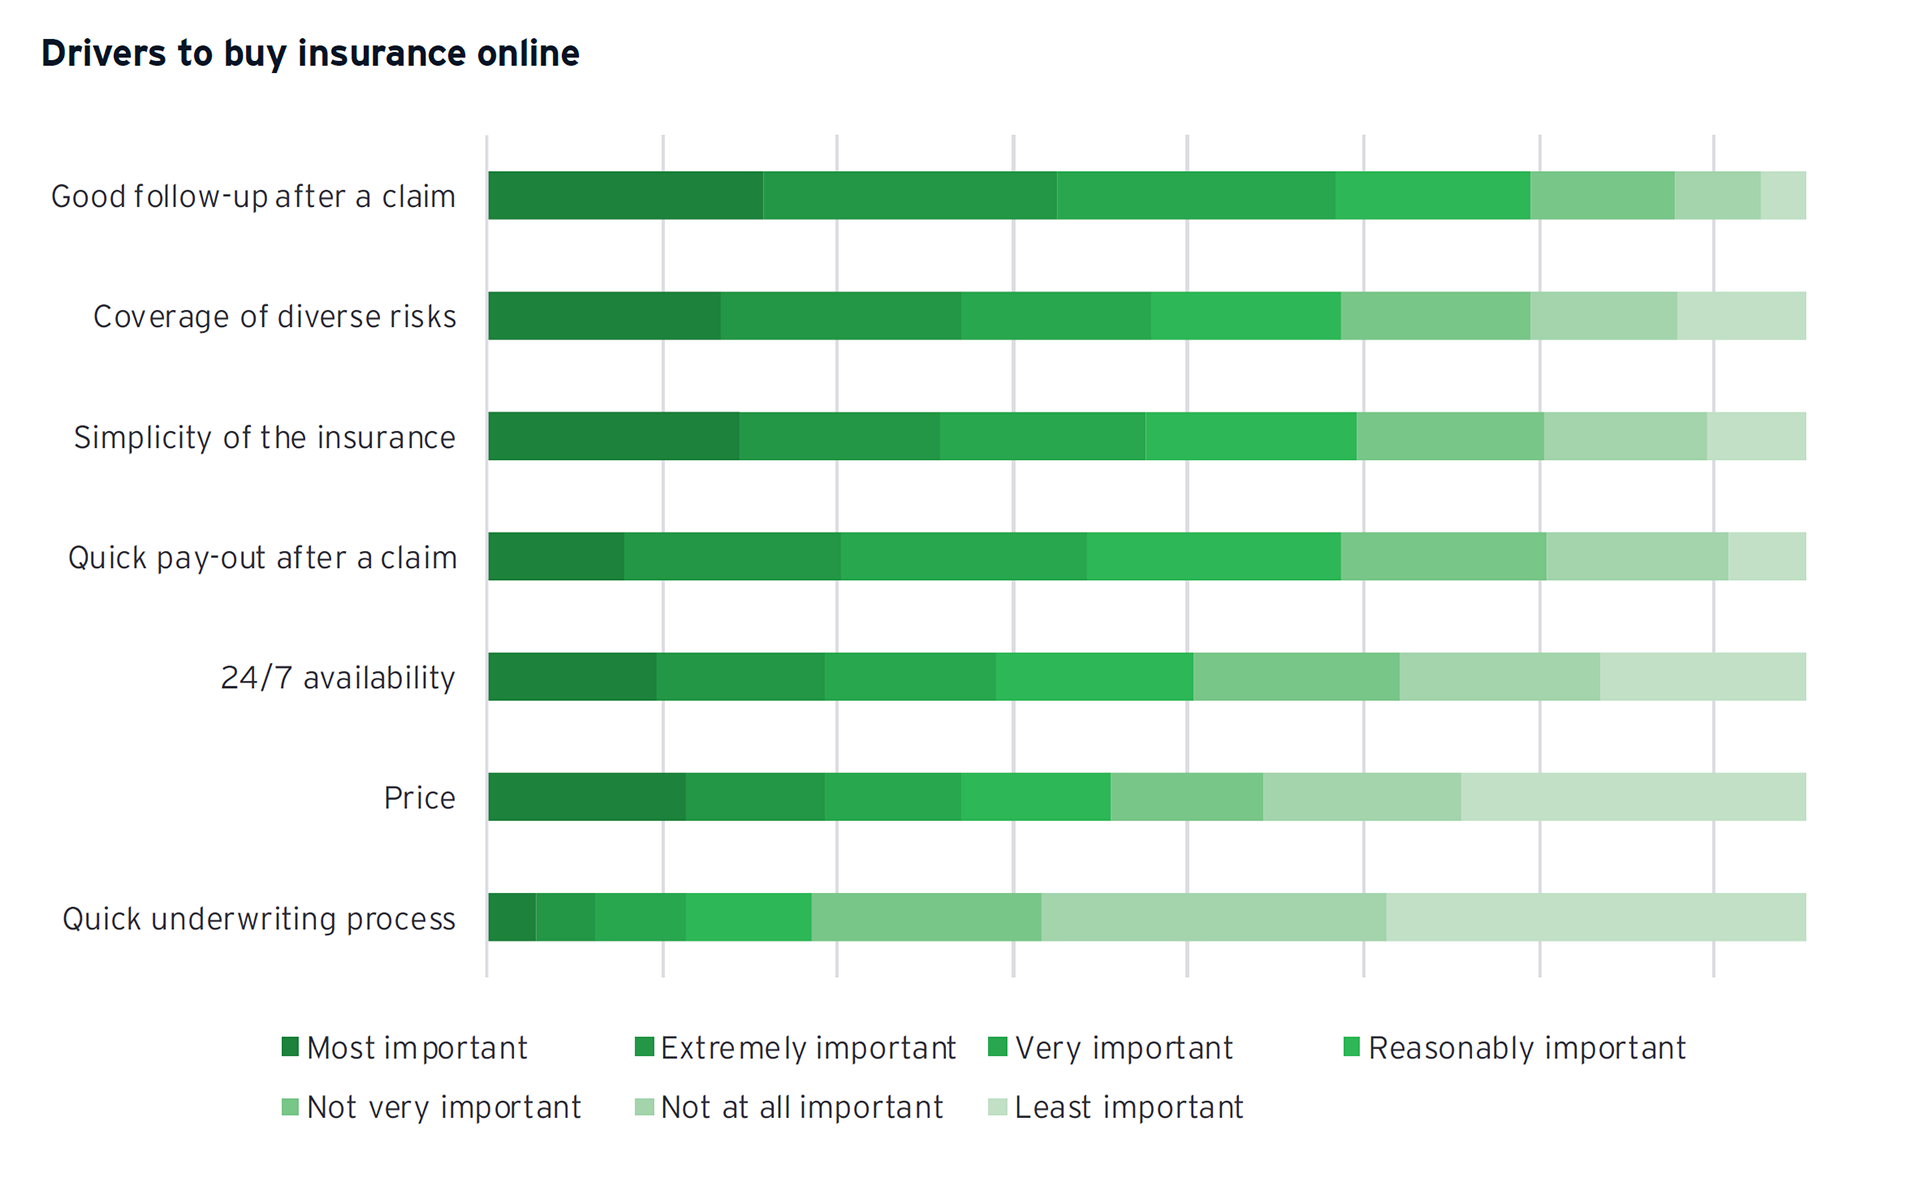 Graph: Drivers to buy insurance online